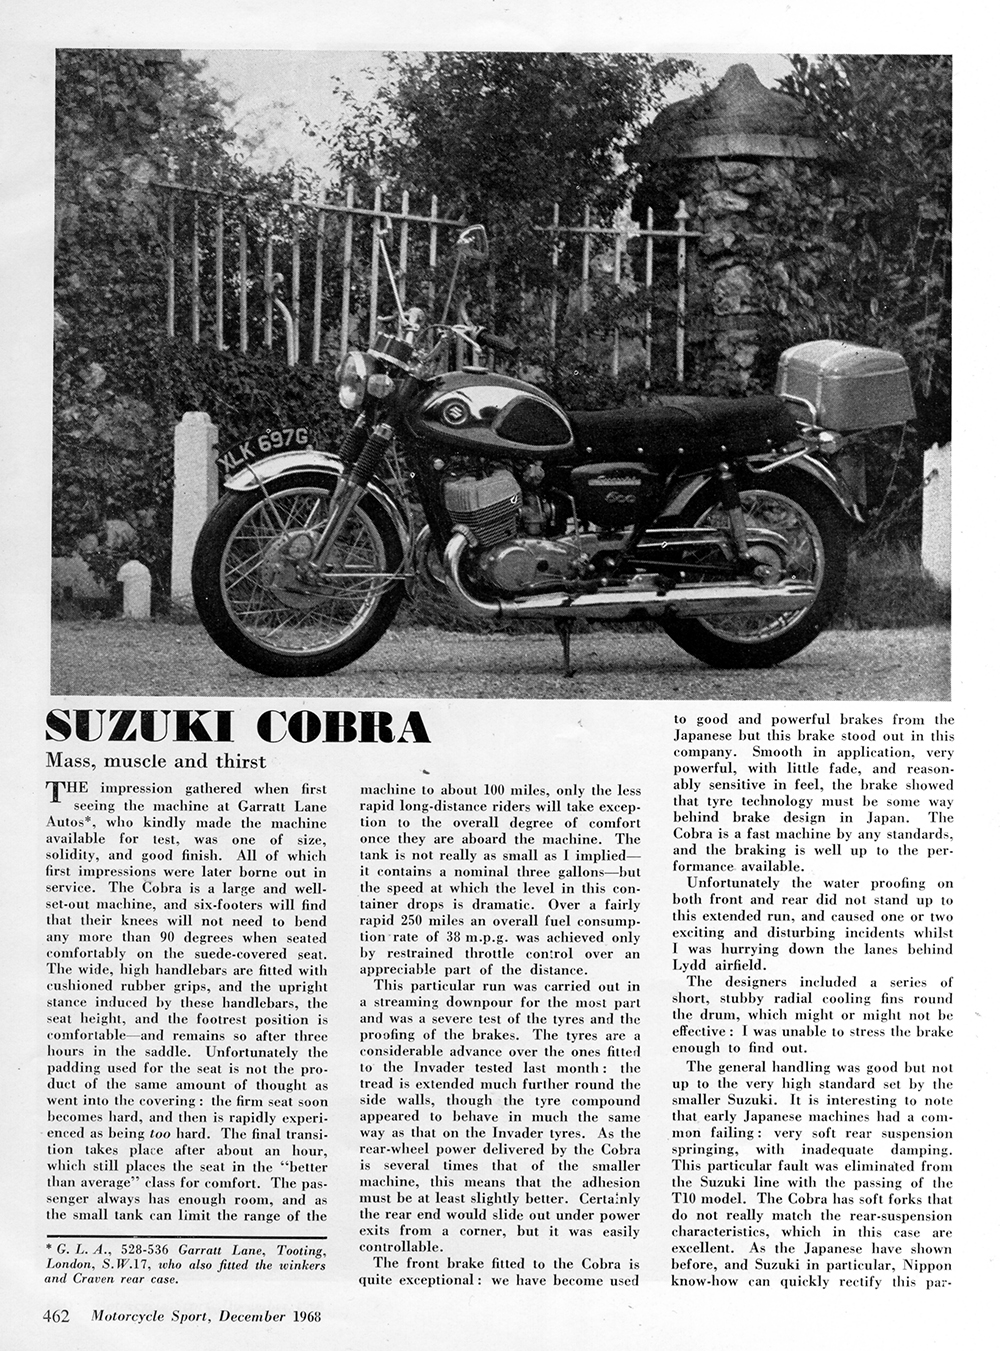 1969 Suzuki Cobra road test 1.jpg